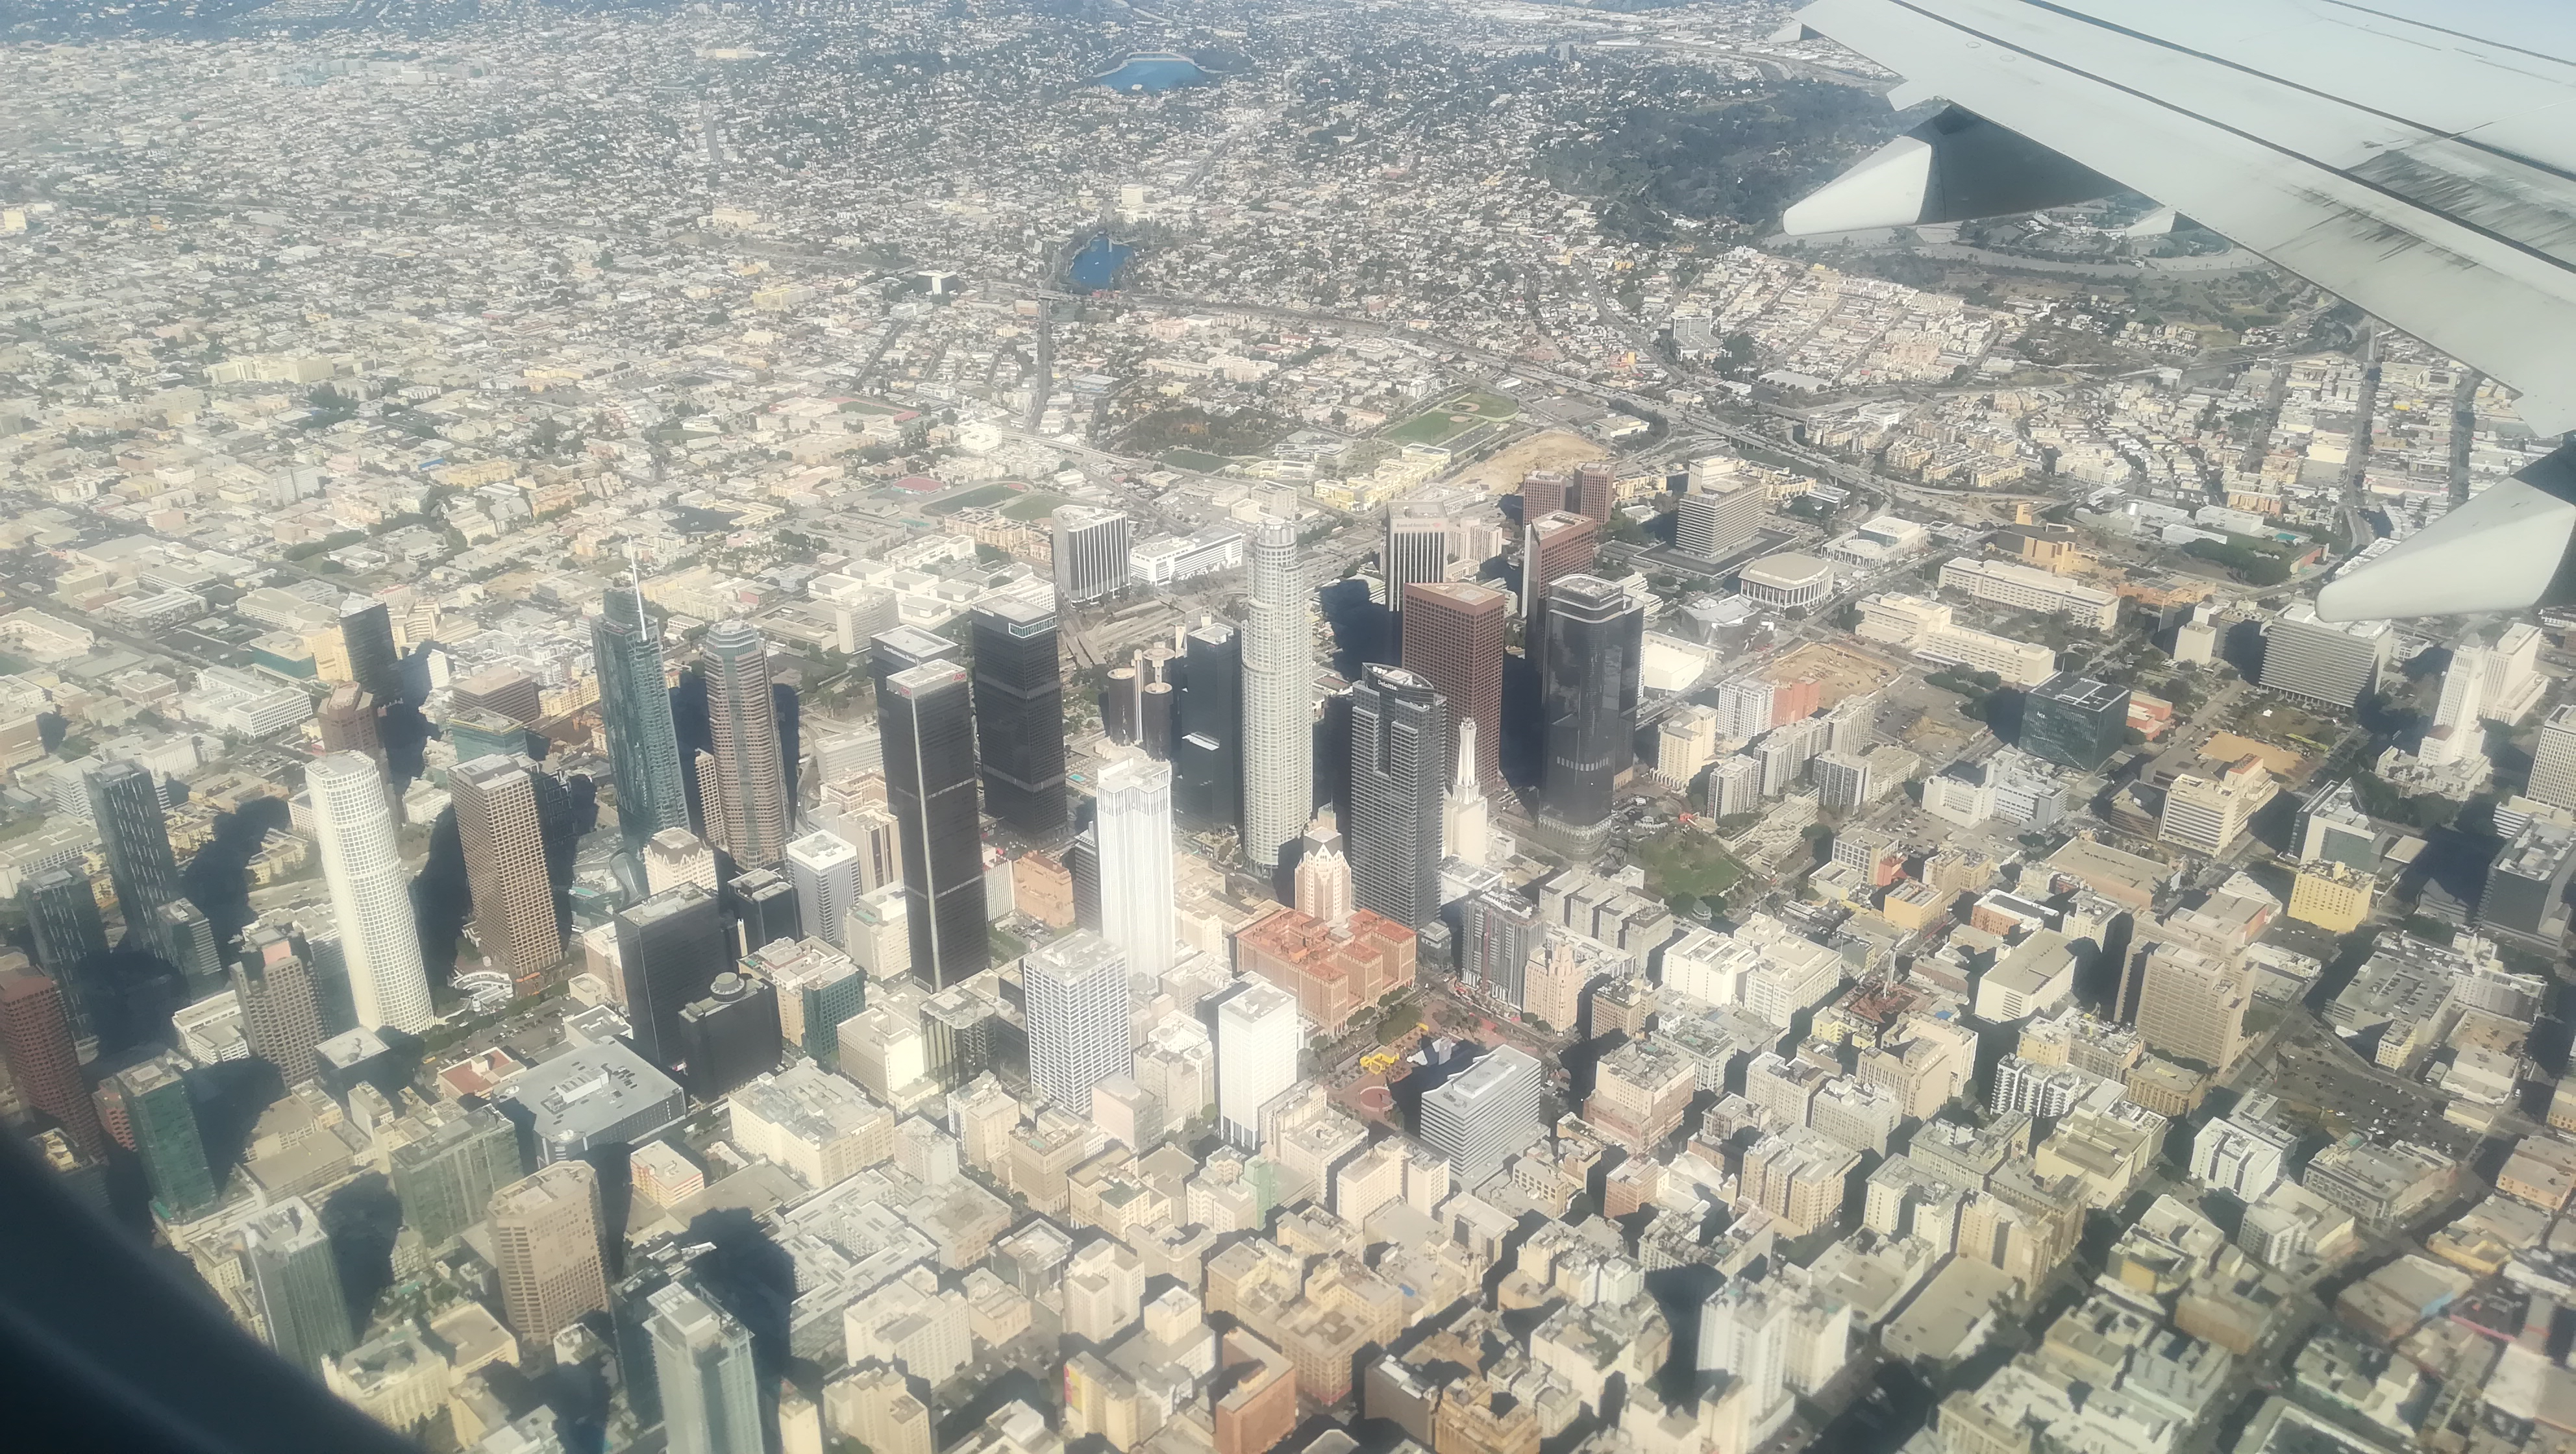 Downtown Los Angeles, the flight from San Francisco to LA, 29 Dec 2018